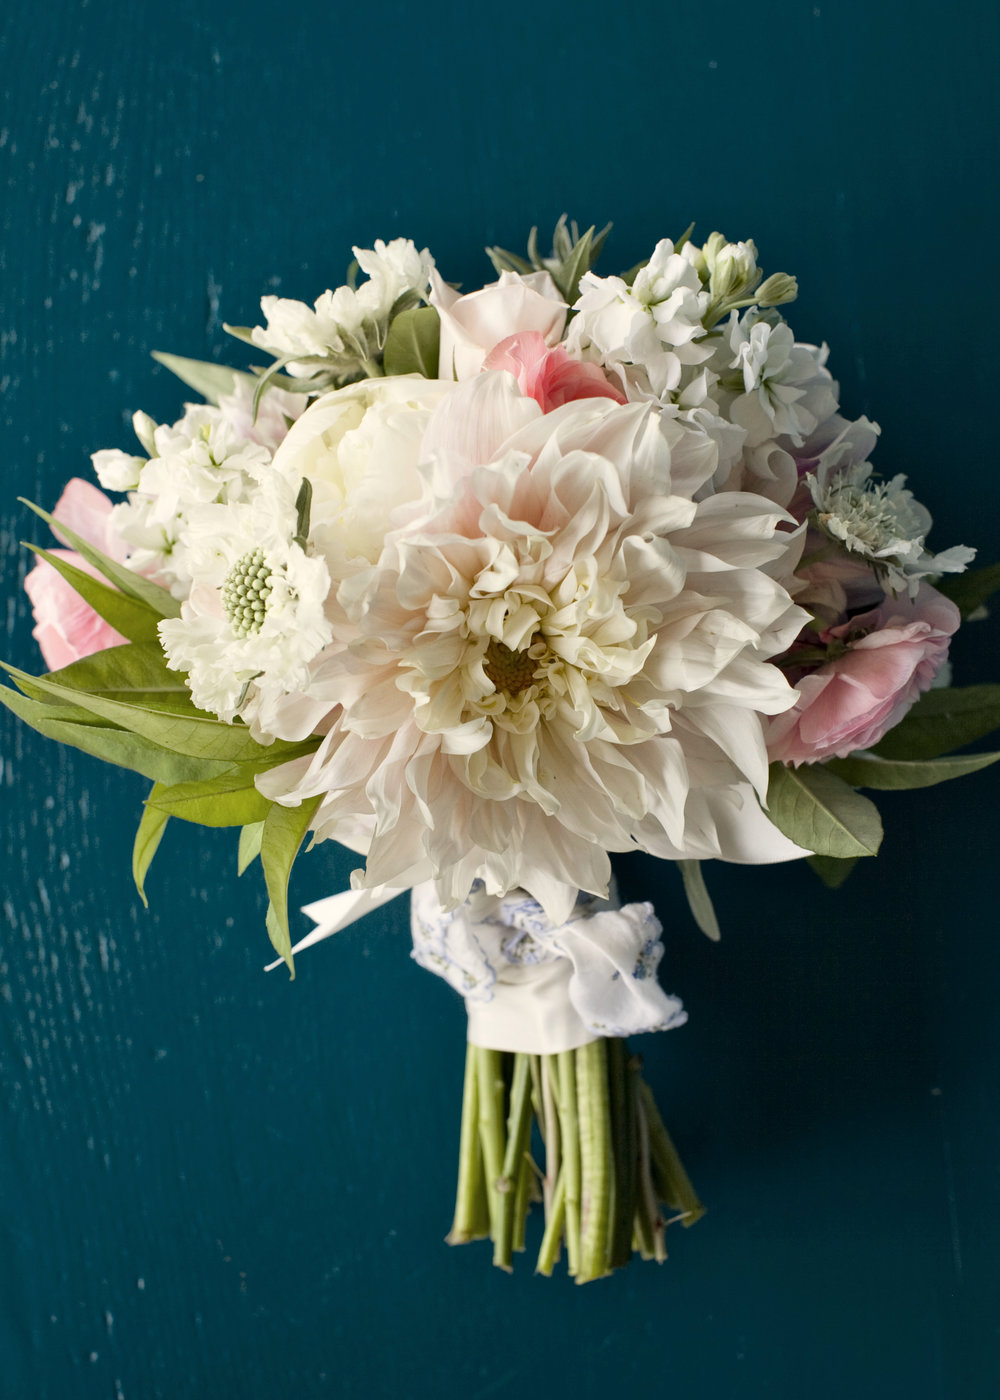 COUPLE'S 2 BOUQUETSET - $300INCLUDES:2 BRIDE'S BOUQUETS• 1 Premium Flower Selection• Assorted flowers with greenery in choice of 2 colors• Hand tied design with ribbon detailing• Delivery to event site (within Kansas City metro)